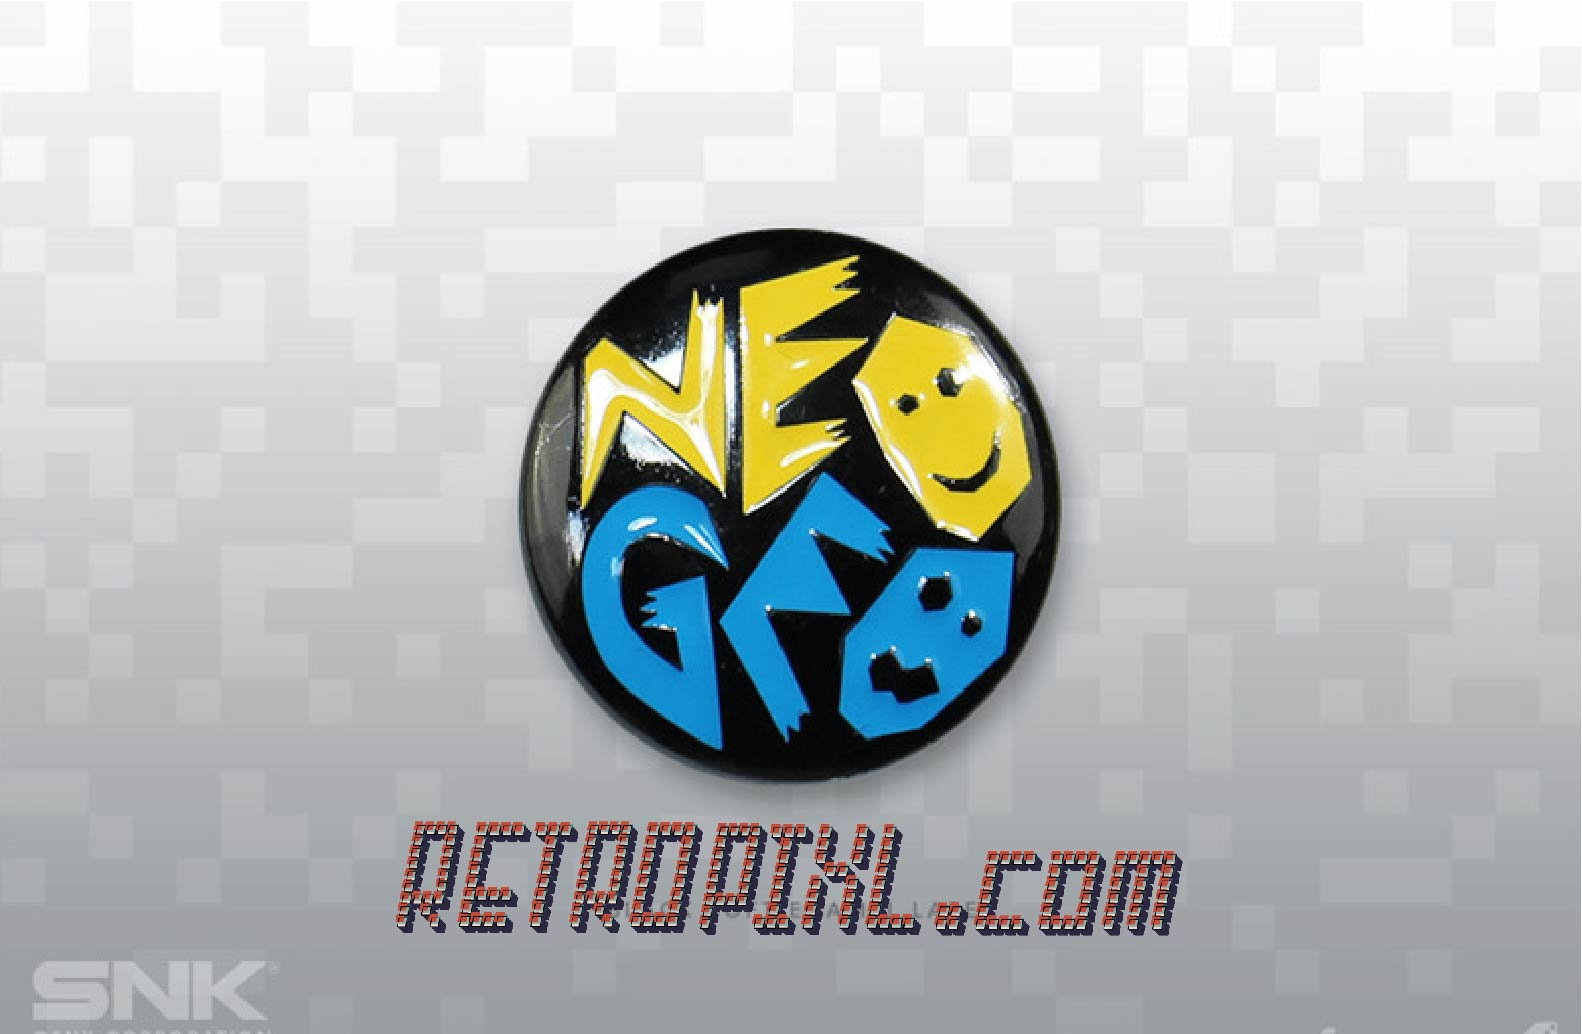 retrogaming Retropixl Badge SNK Neo Geo limited edition pins neogeo